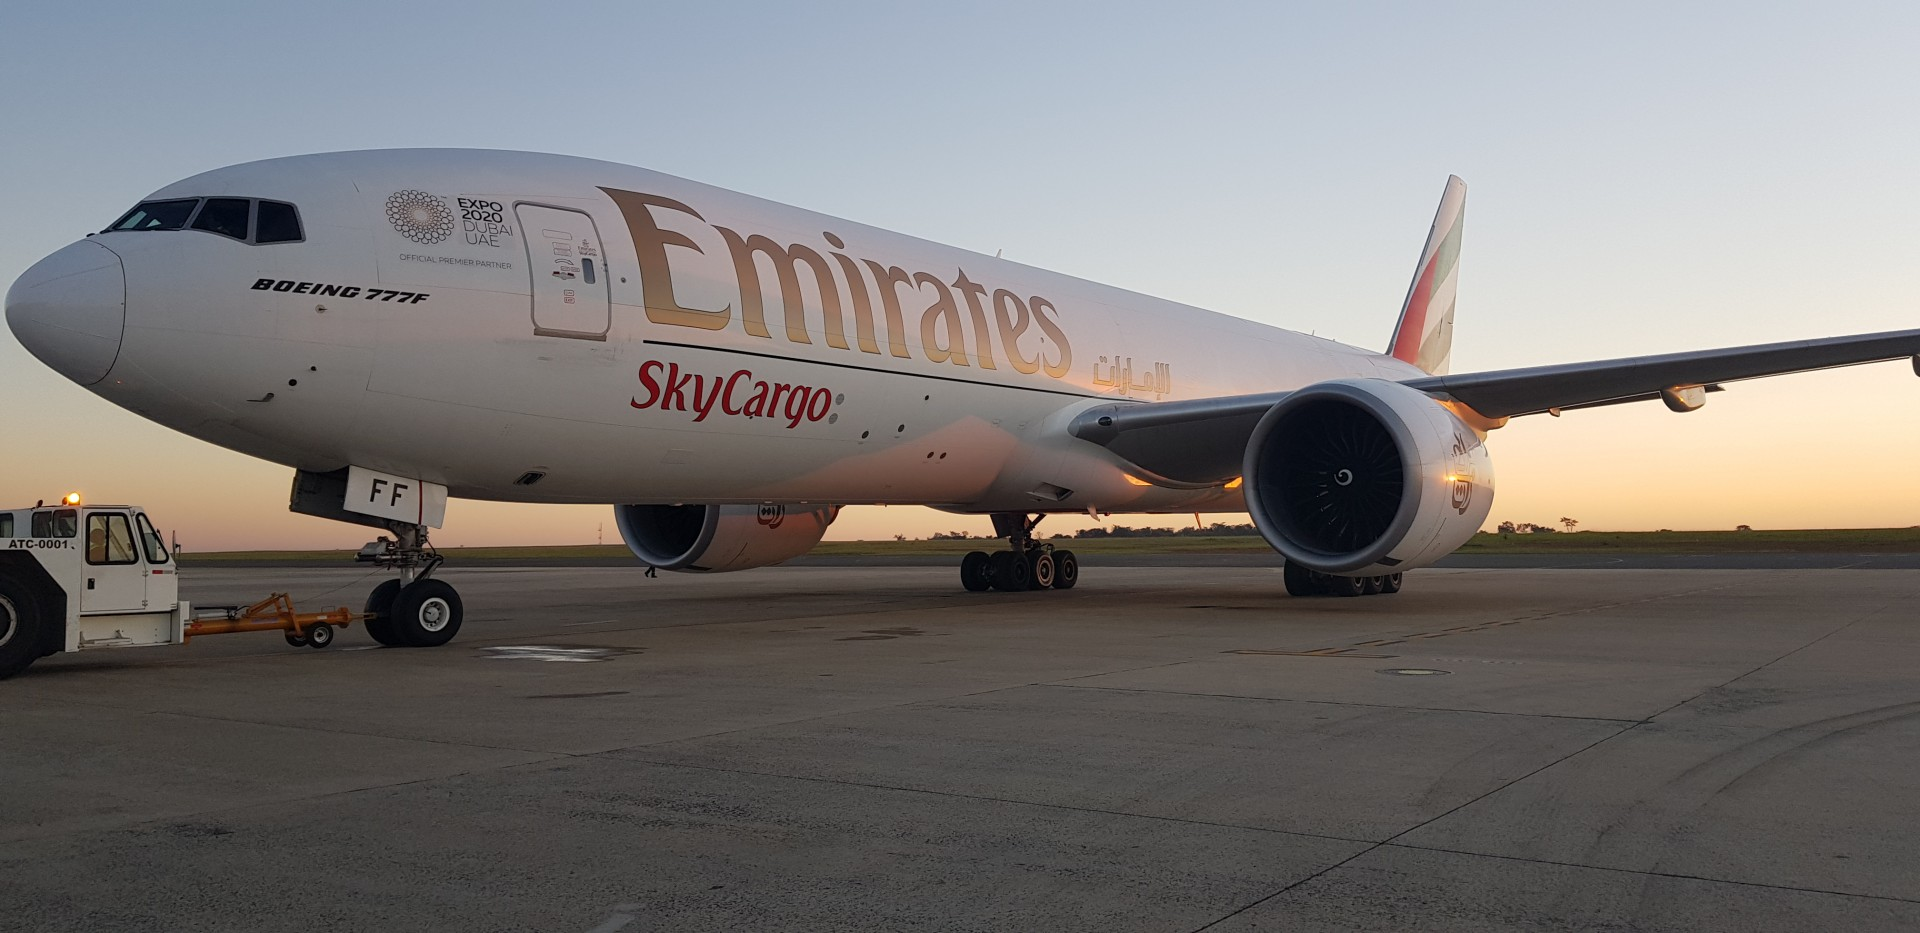 An Emirates SkyCargo Boeing 777 freighter with close to 100 tonnes of cargo capacity